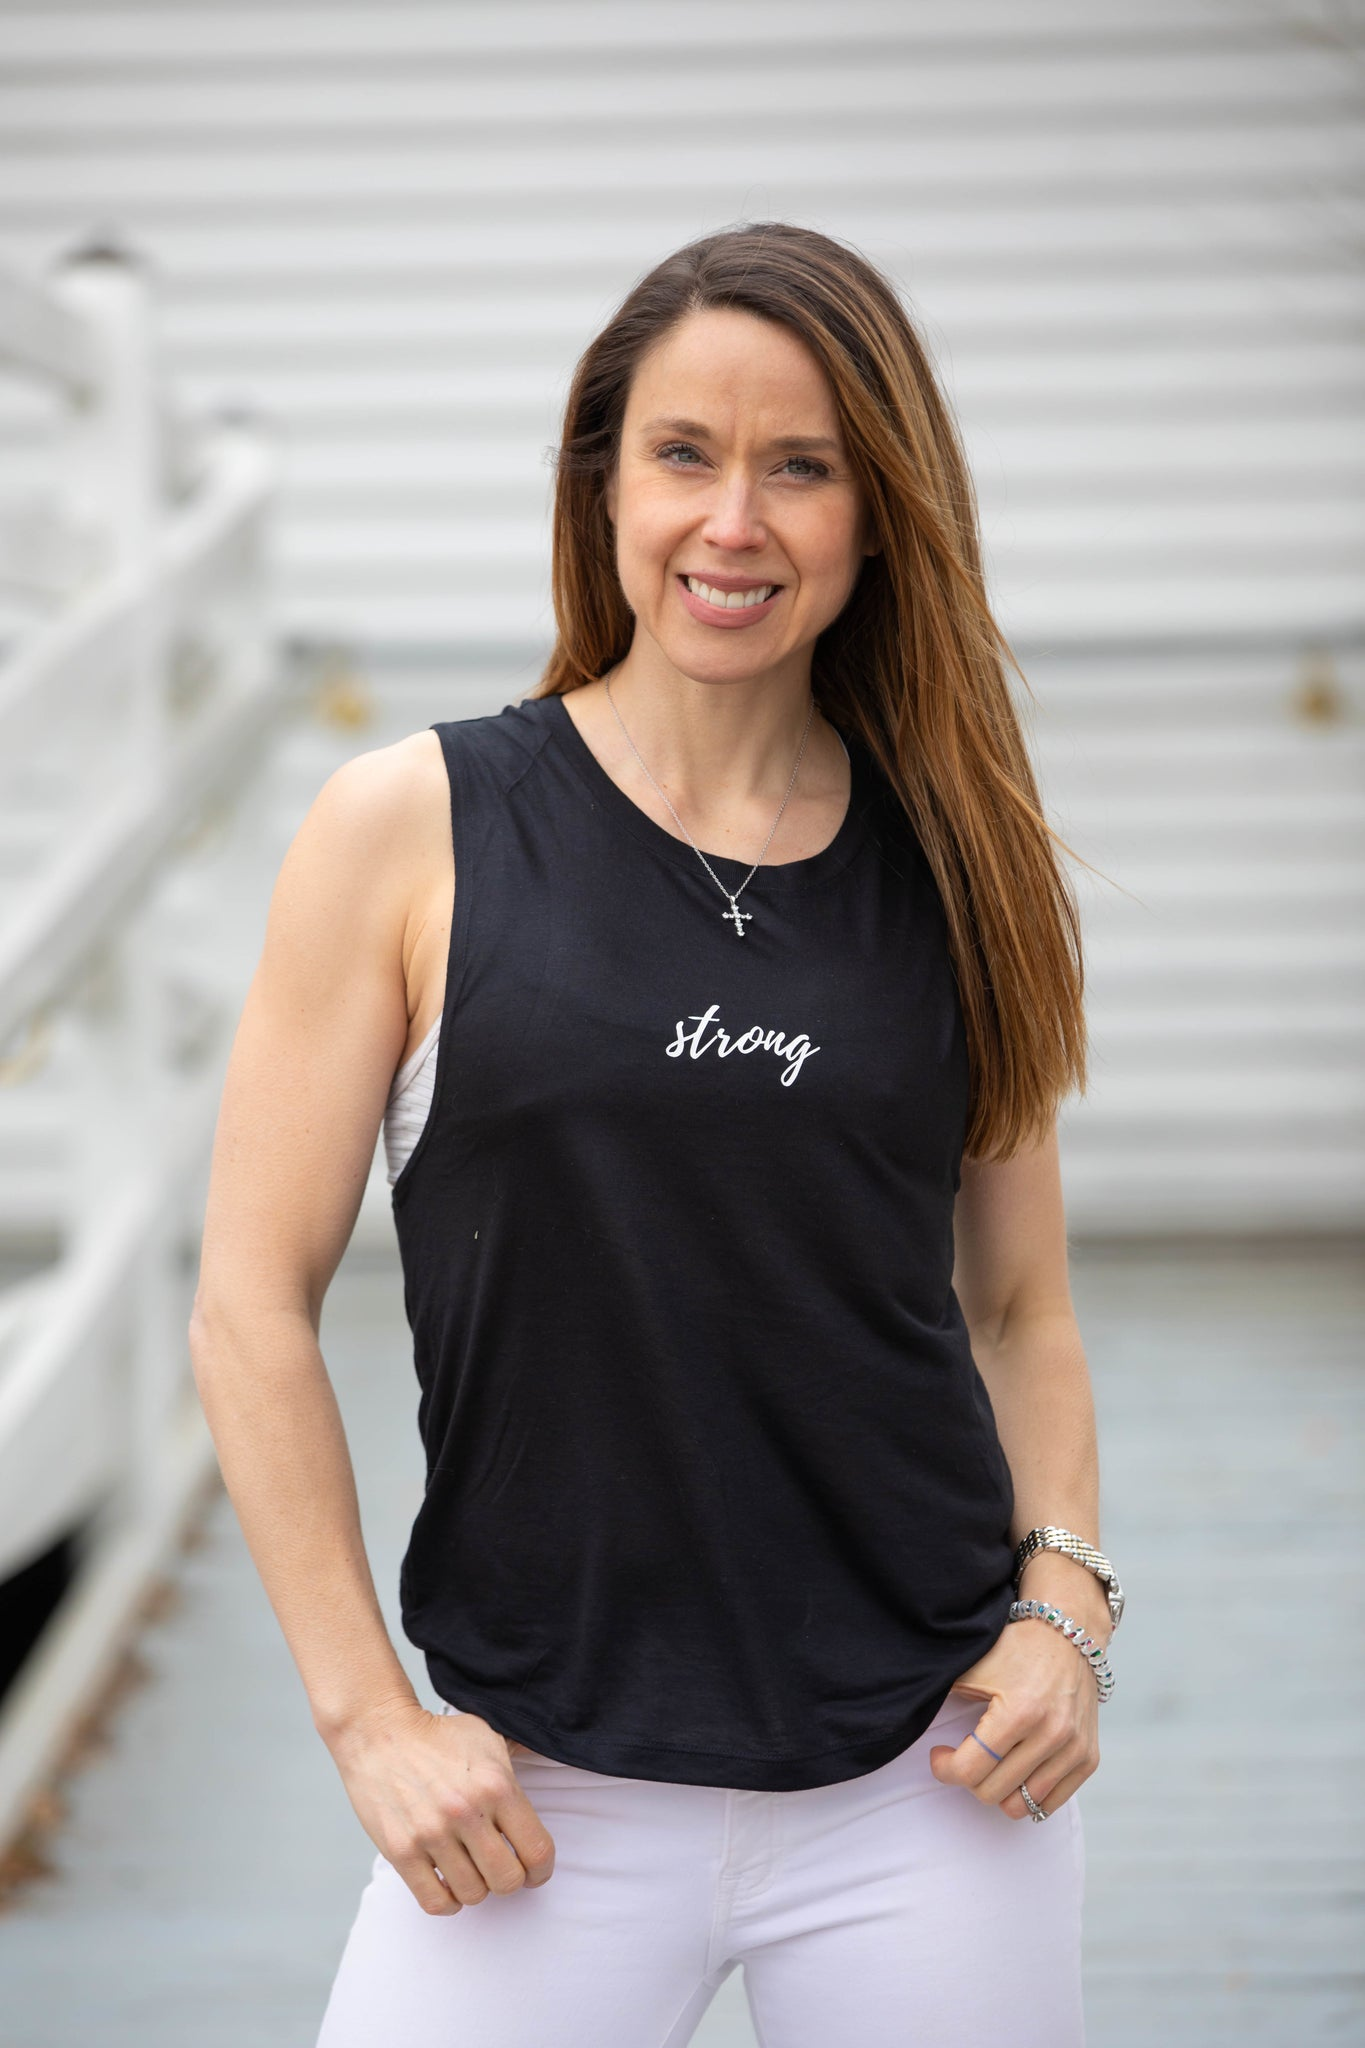 Strong - Muscle Tank  (Sold Out)